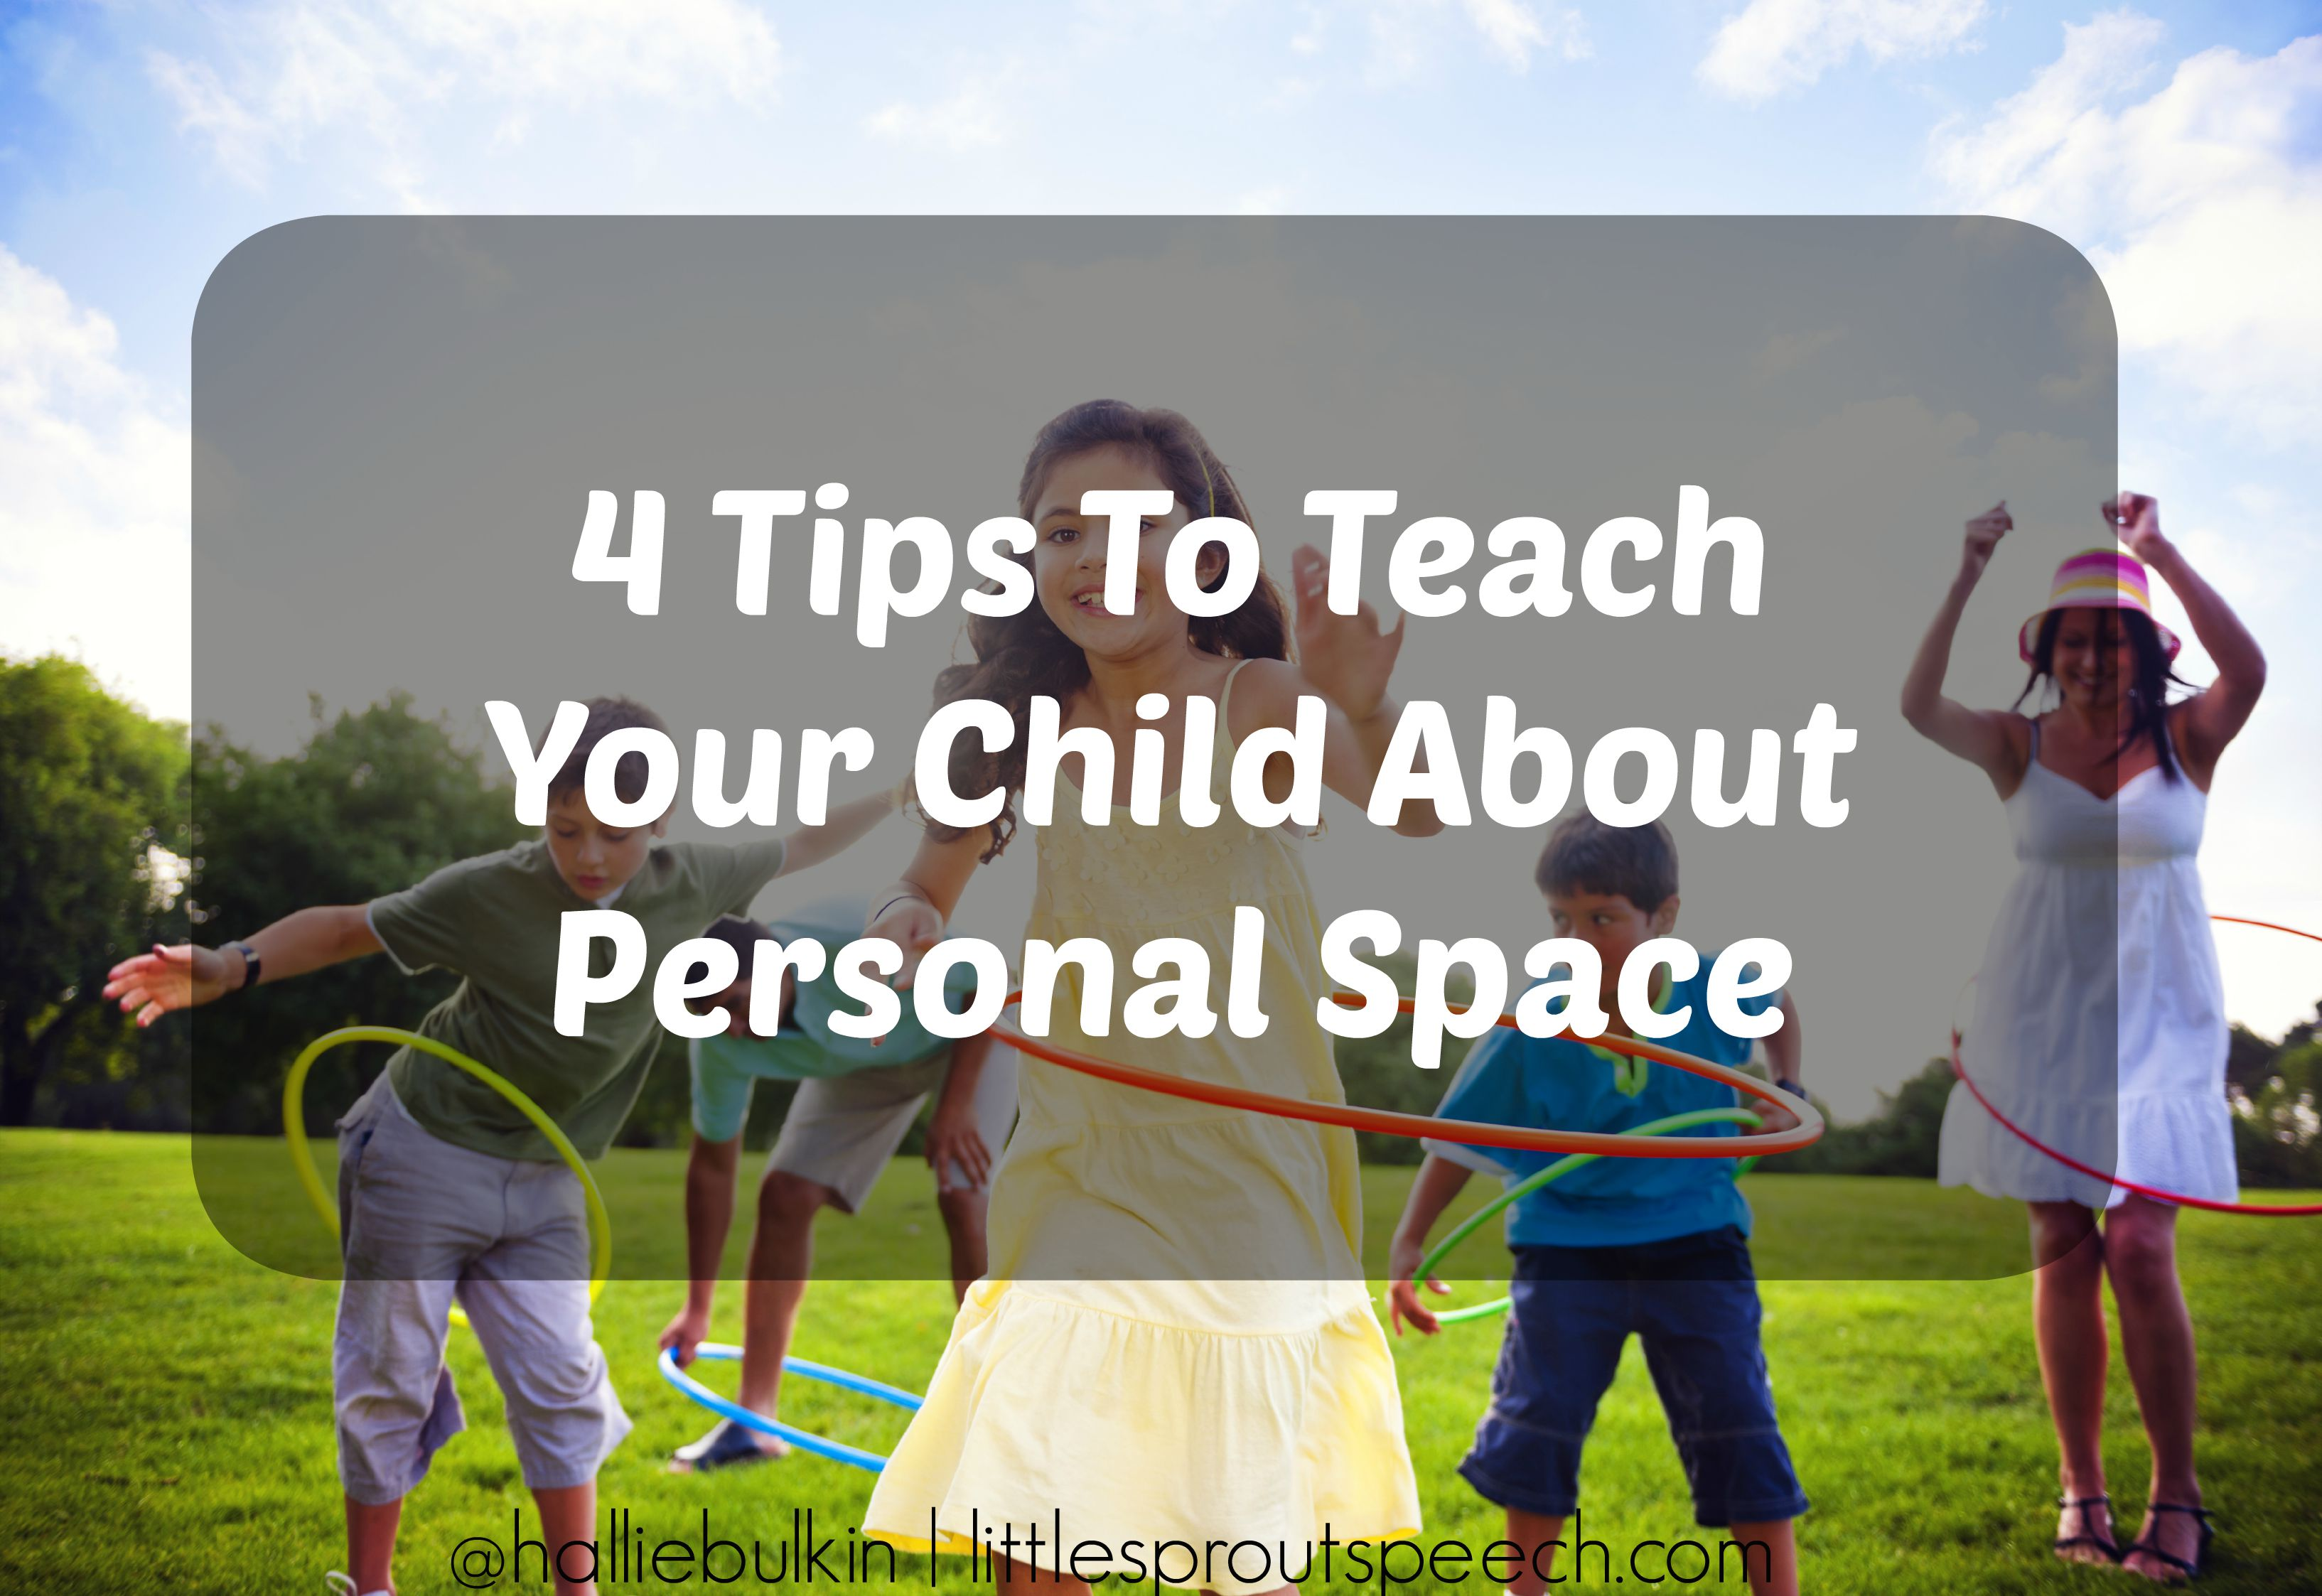 4 Tips For Teaching Your Child About Personal Space